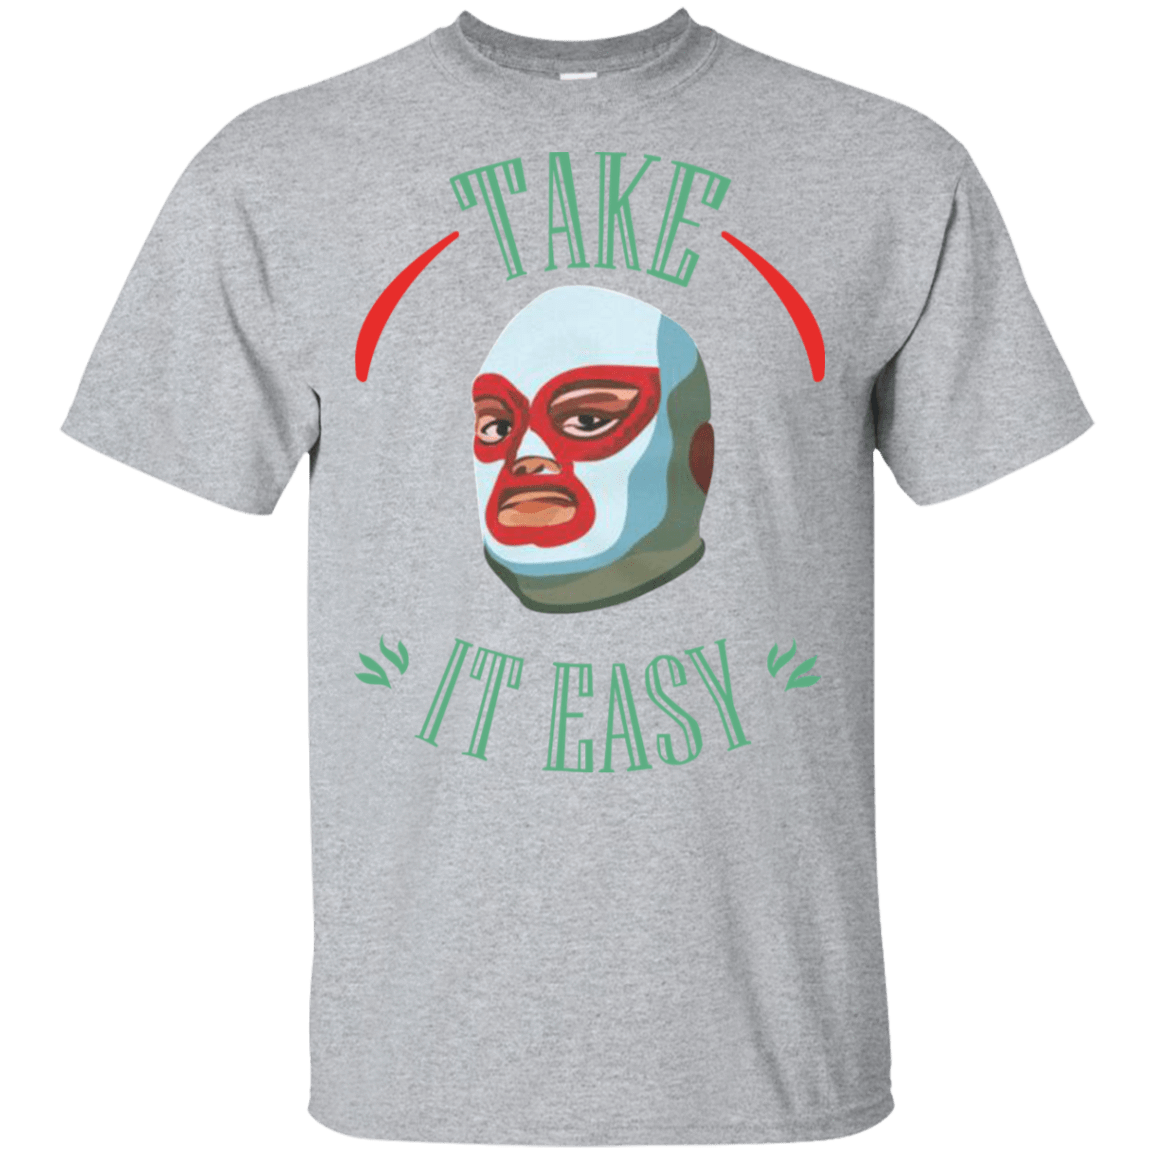 Take It Easy 22-115-74004788-254 - Tee Ript